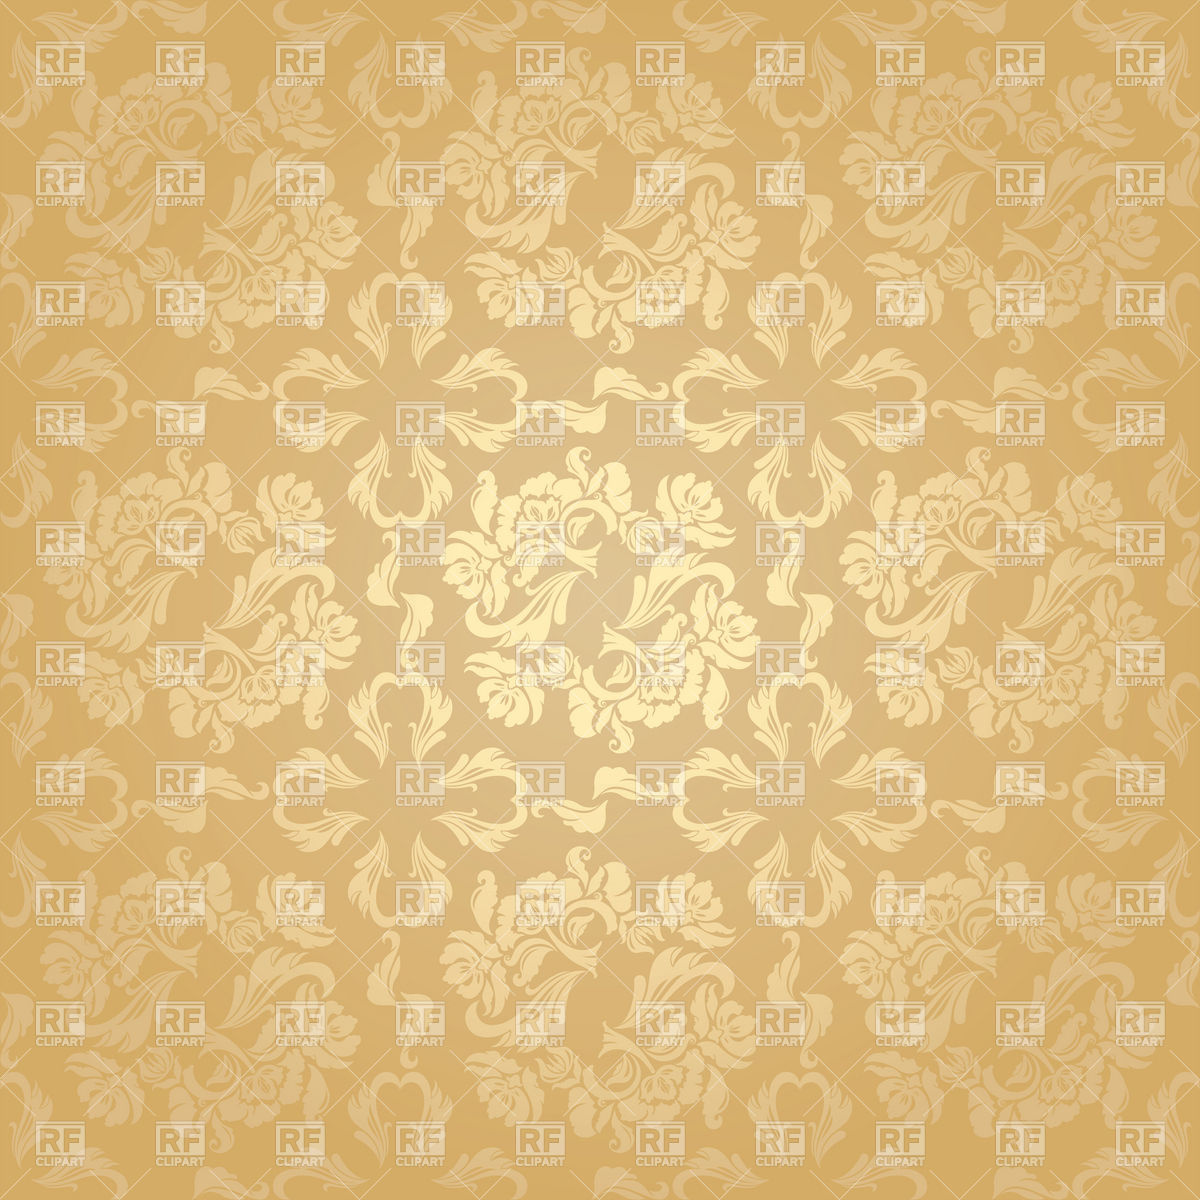 floral victorian wallpaper download royalty free vector clipart EPS 1200x1200